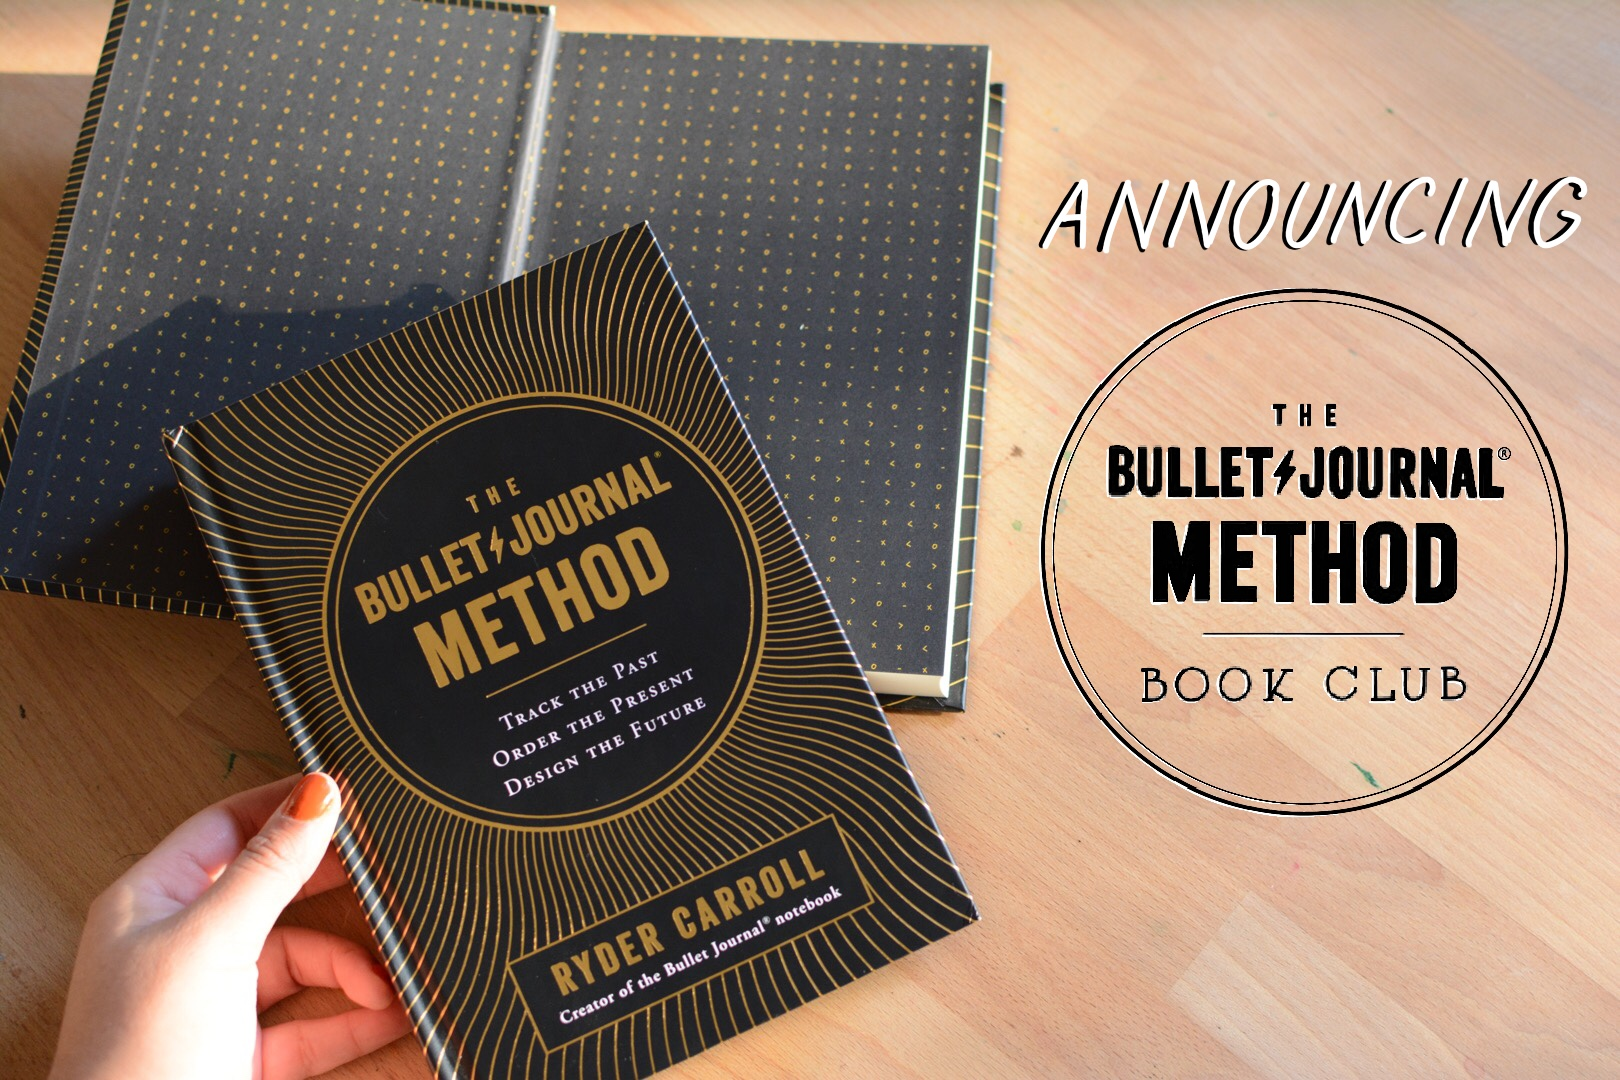 Read the official announcement! - The Bullet Journal Method Book Club